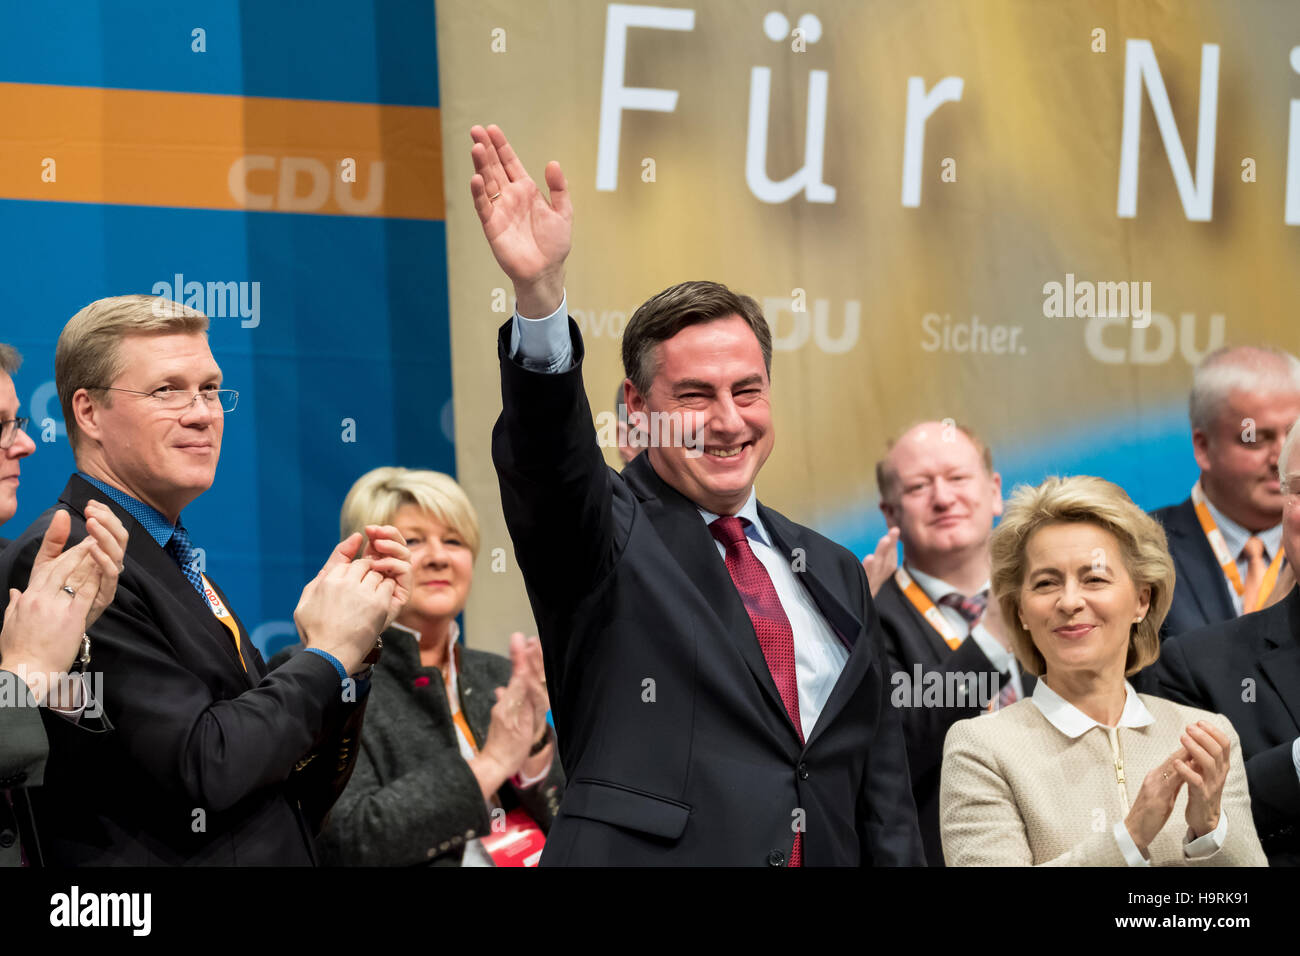 Hameln, Germany. 26th Nov, 2016. David McAllister (CDU, C), former head of the CDU in Lower Saxony and candidate - Stock Image